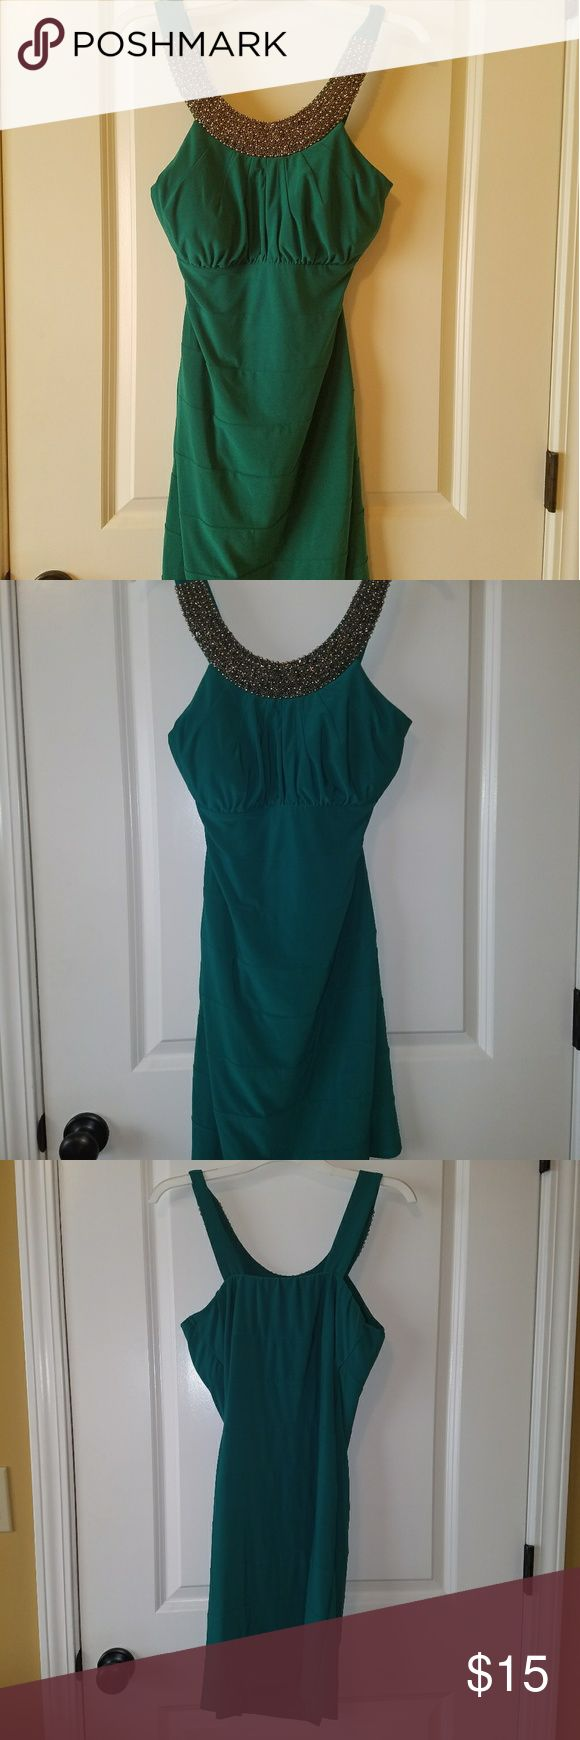 Emerald green cocktail dress Vibrant green with pewter accent around neckline. Worn once Dresses